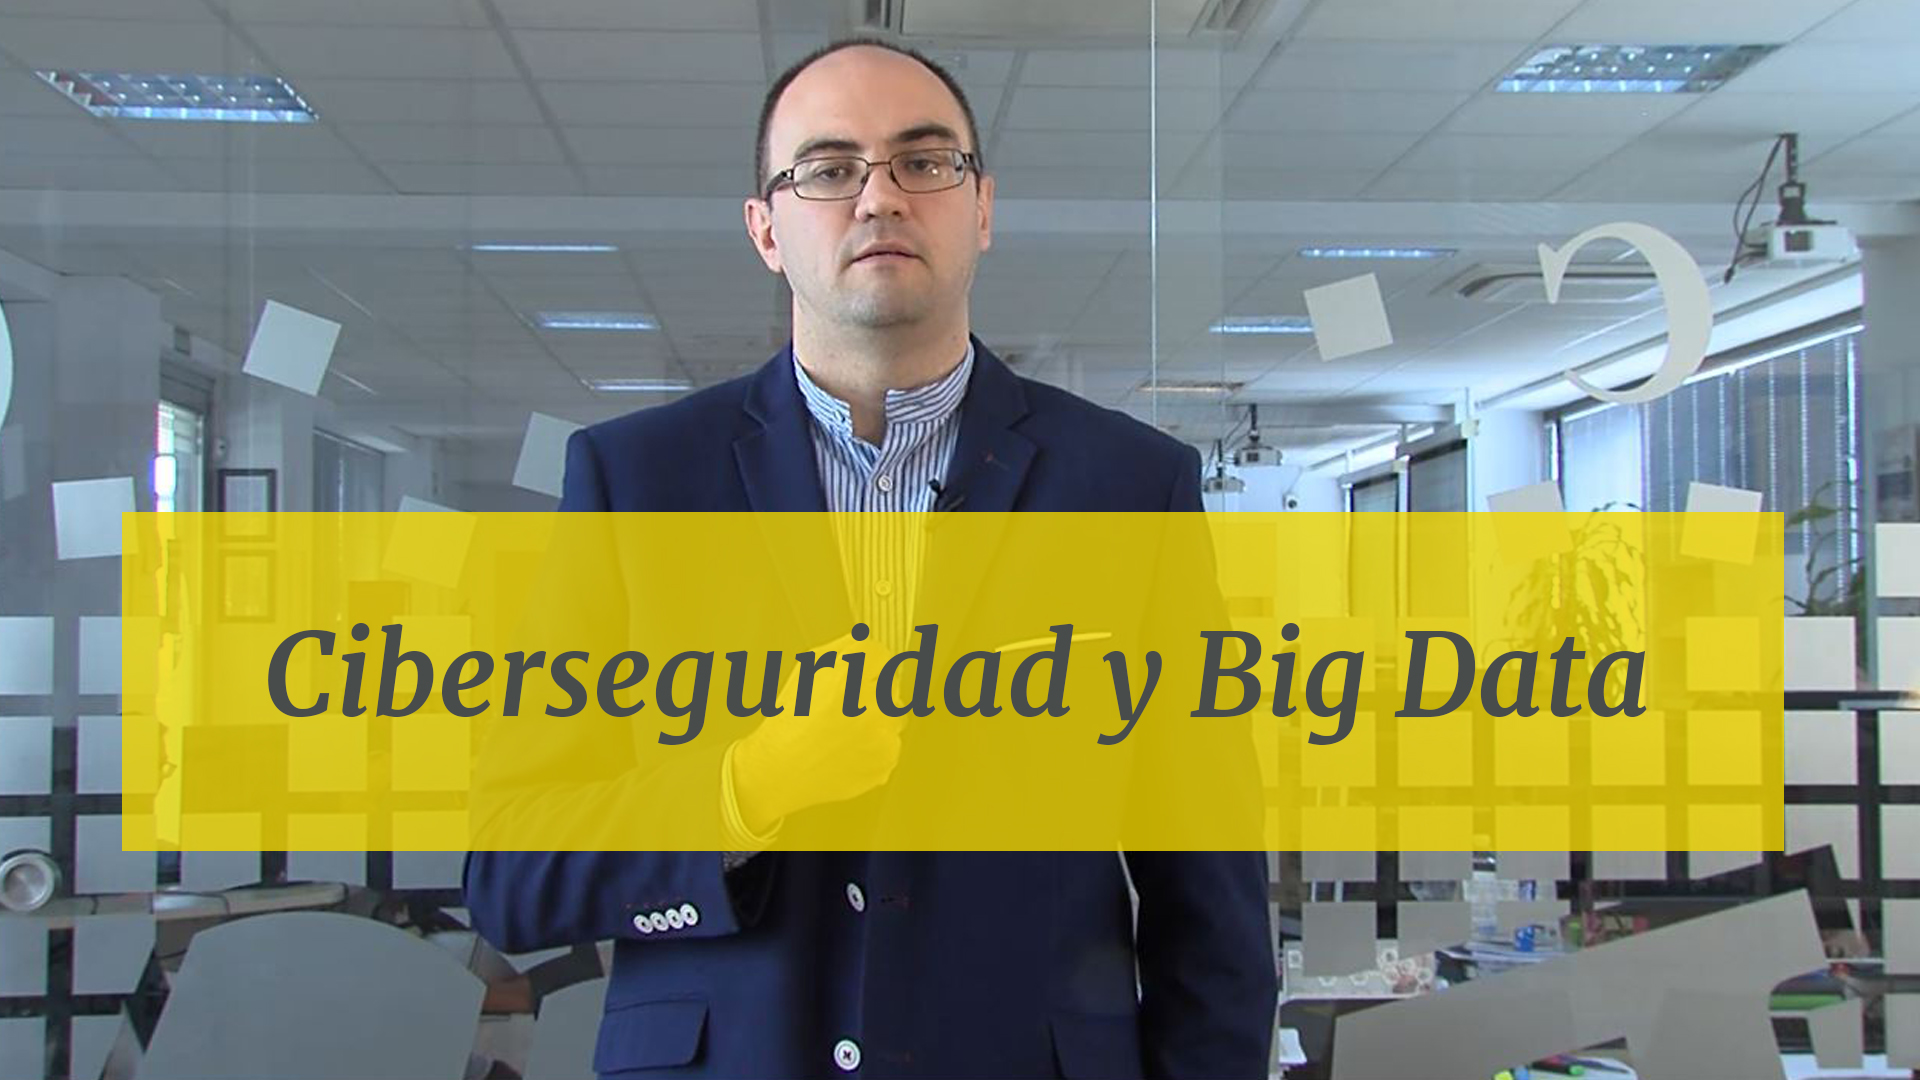 Ciberseguridad y Big Data en la empresa